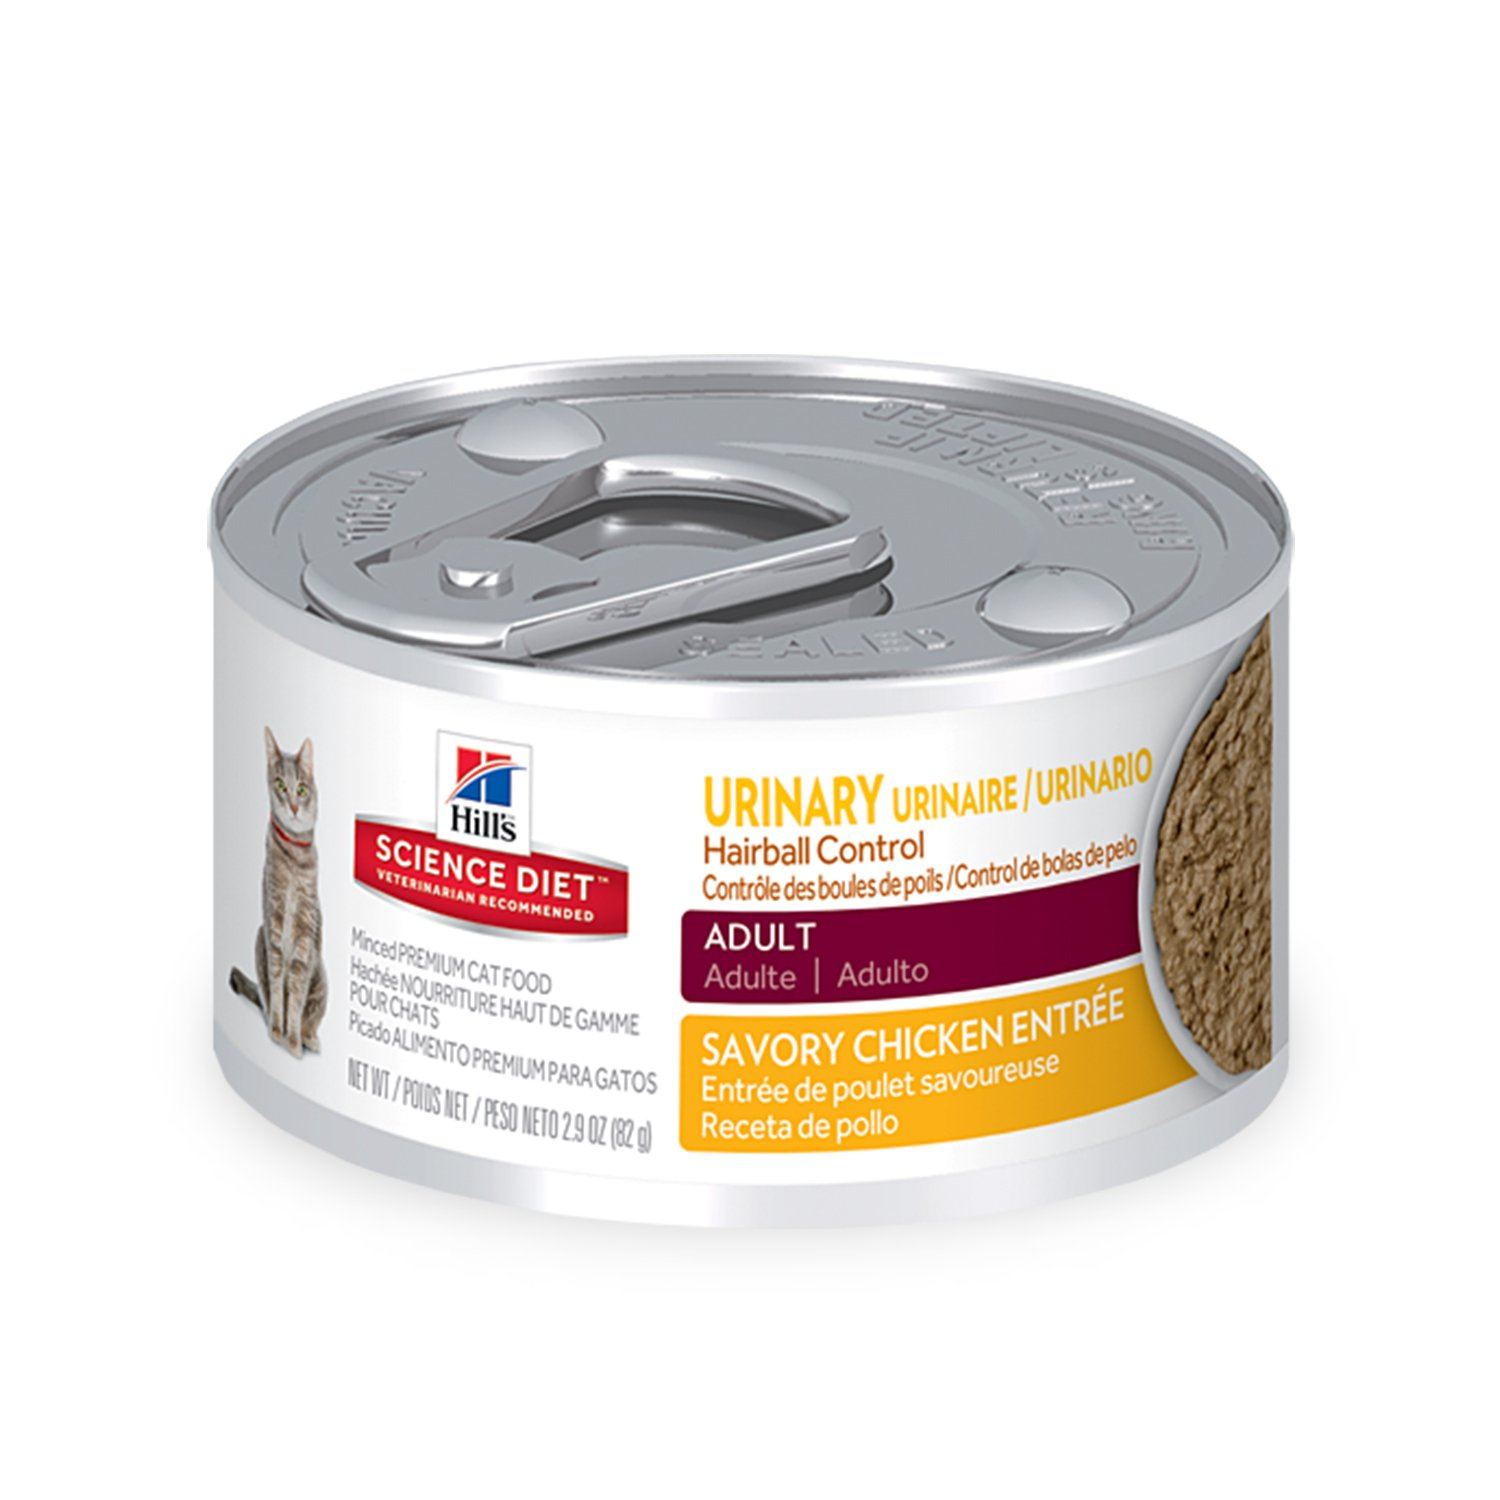 Benefit Of Urinary Care Cat Food